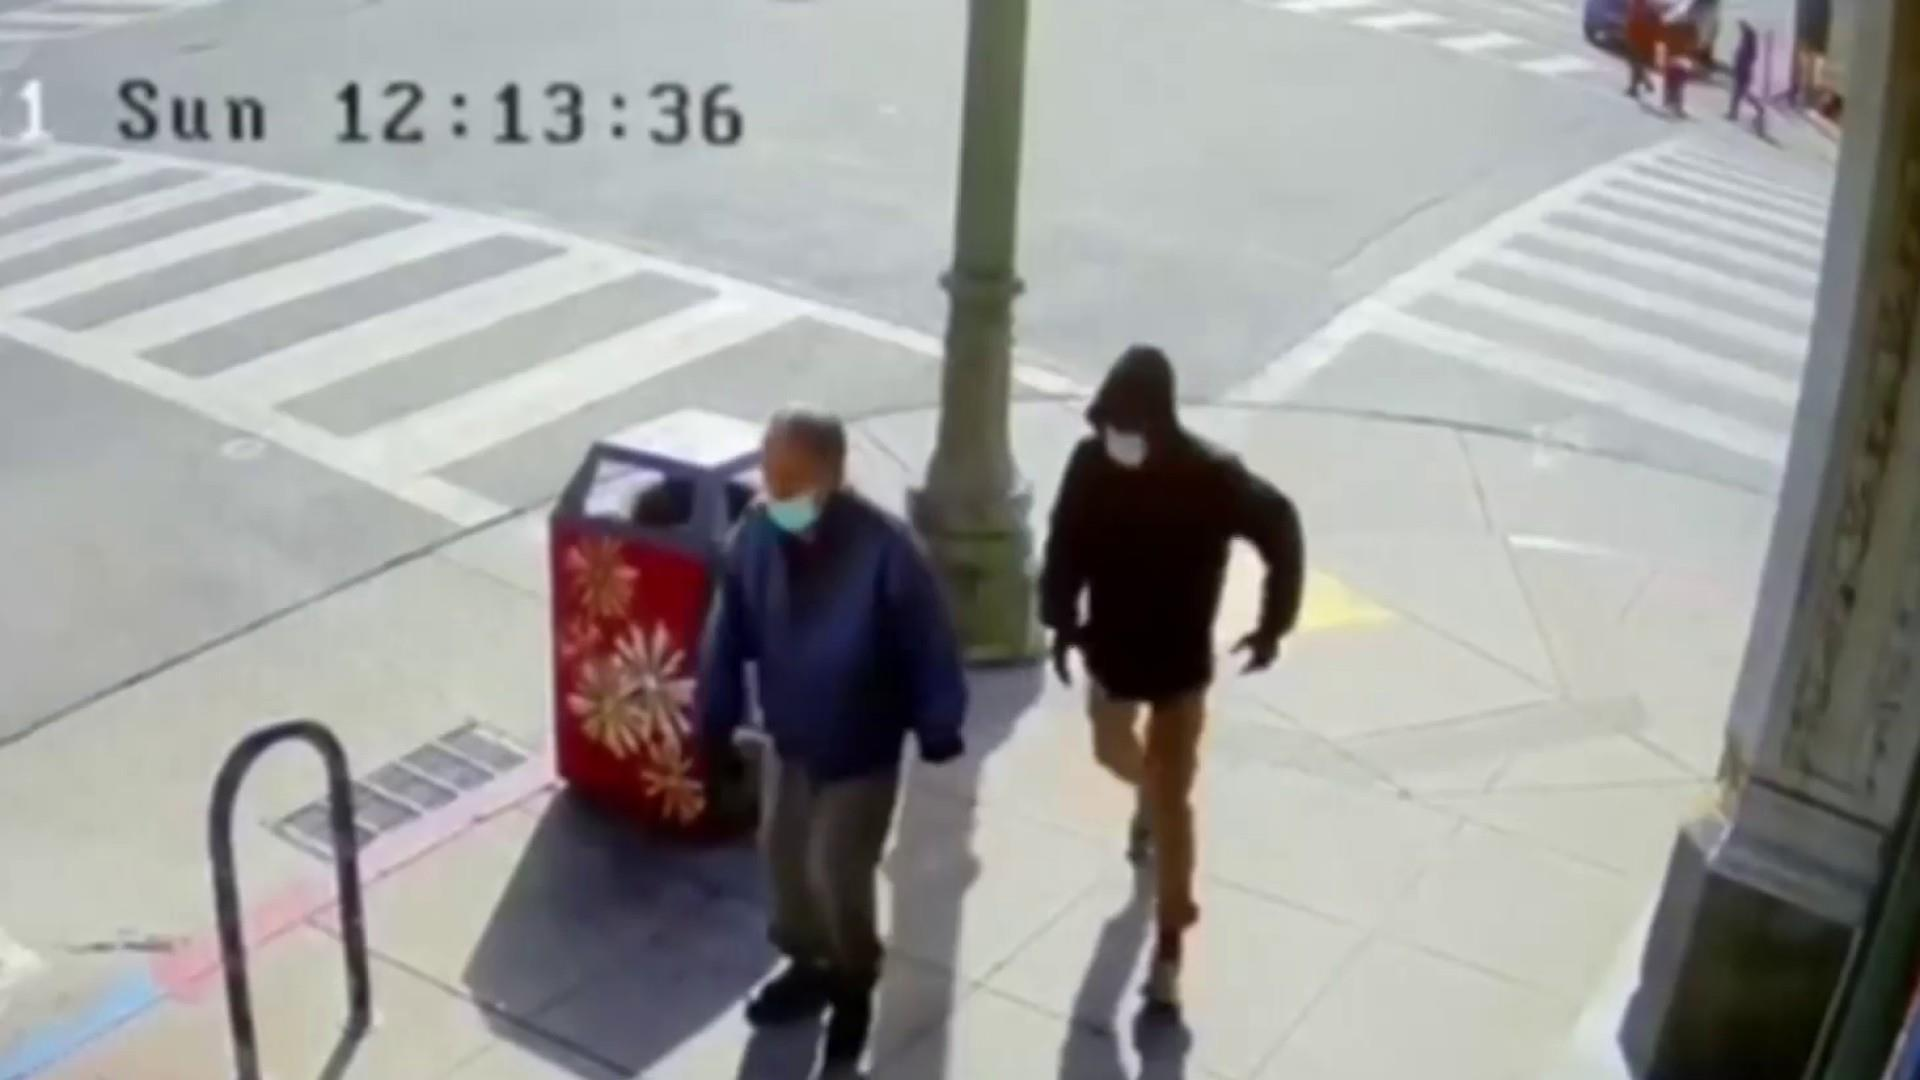 news.yahoo.com: Disturbing attacks on Asian Americans spark calls for action, outrage